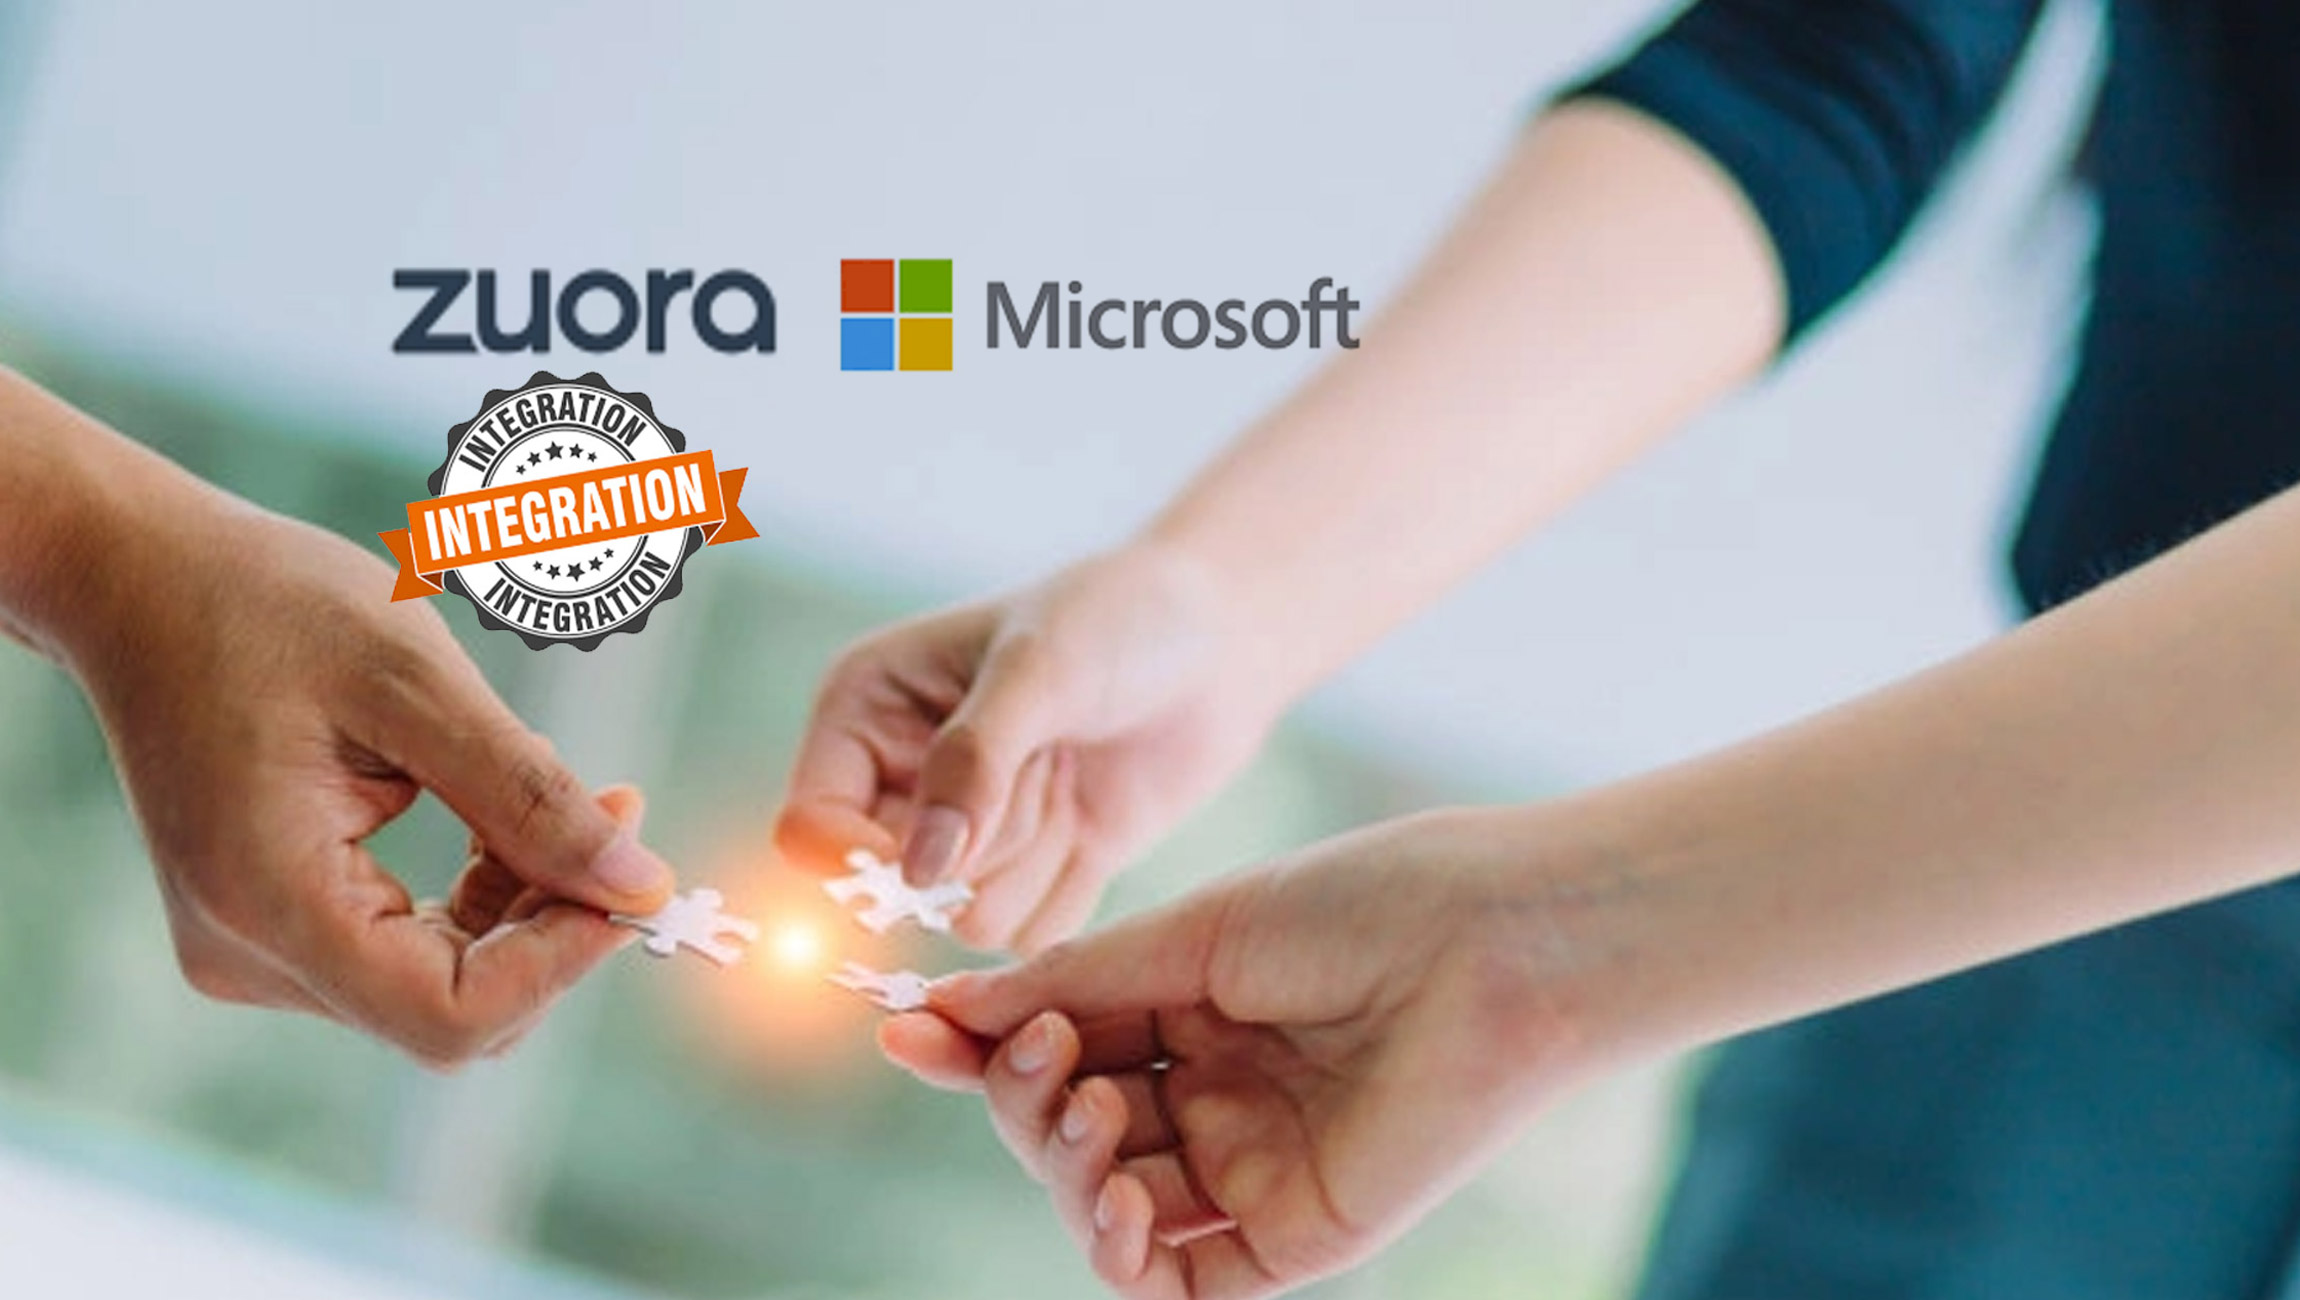 Zuora Announces Integration with Microsoft to Accelerate Growth of Subscription Economy and Automate Enterprise Revenue Recognition